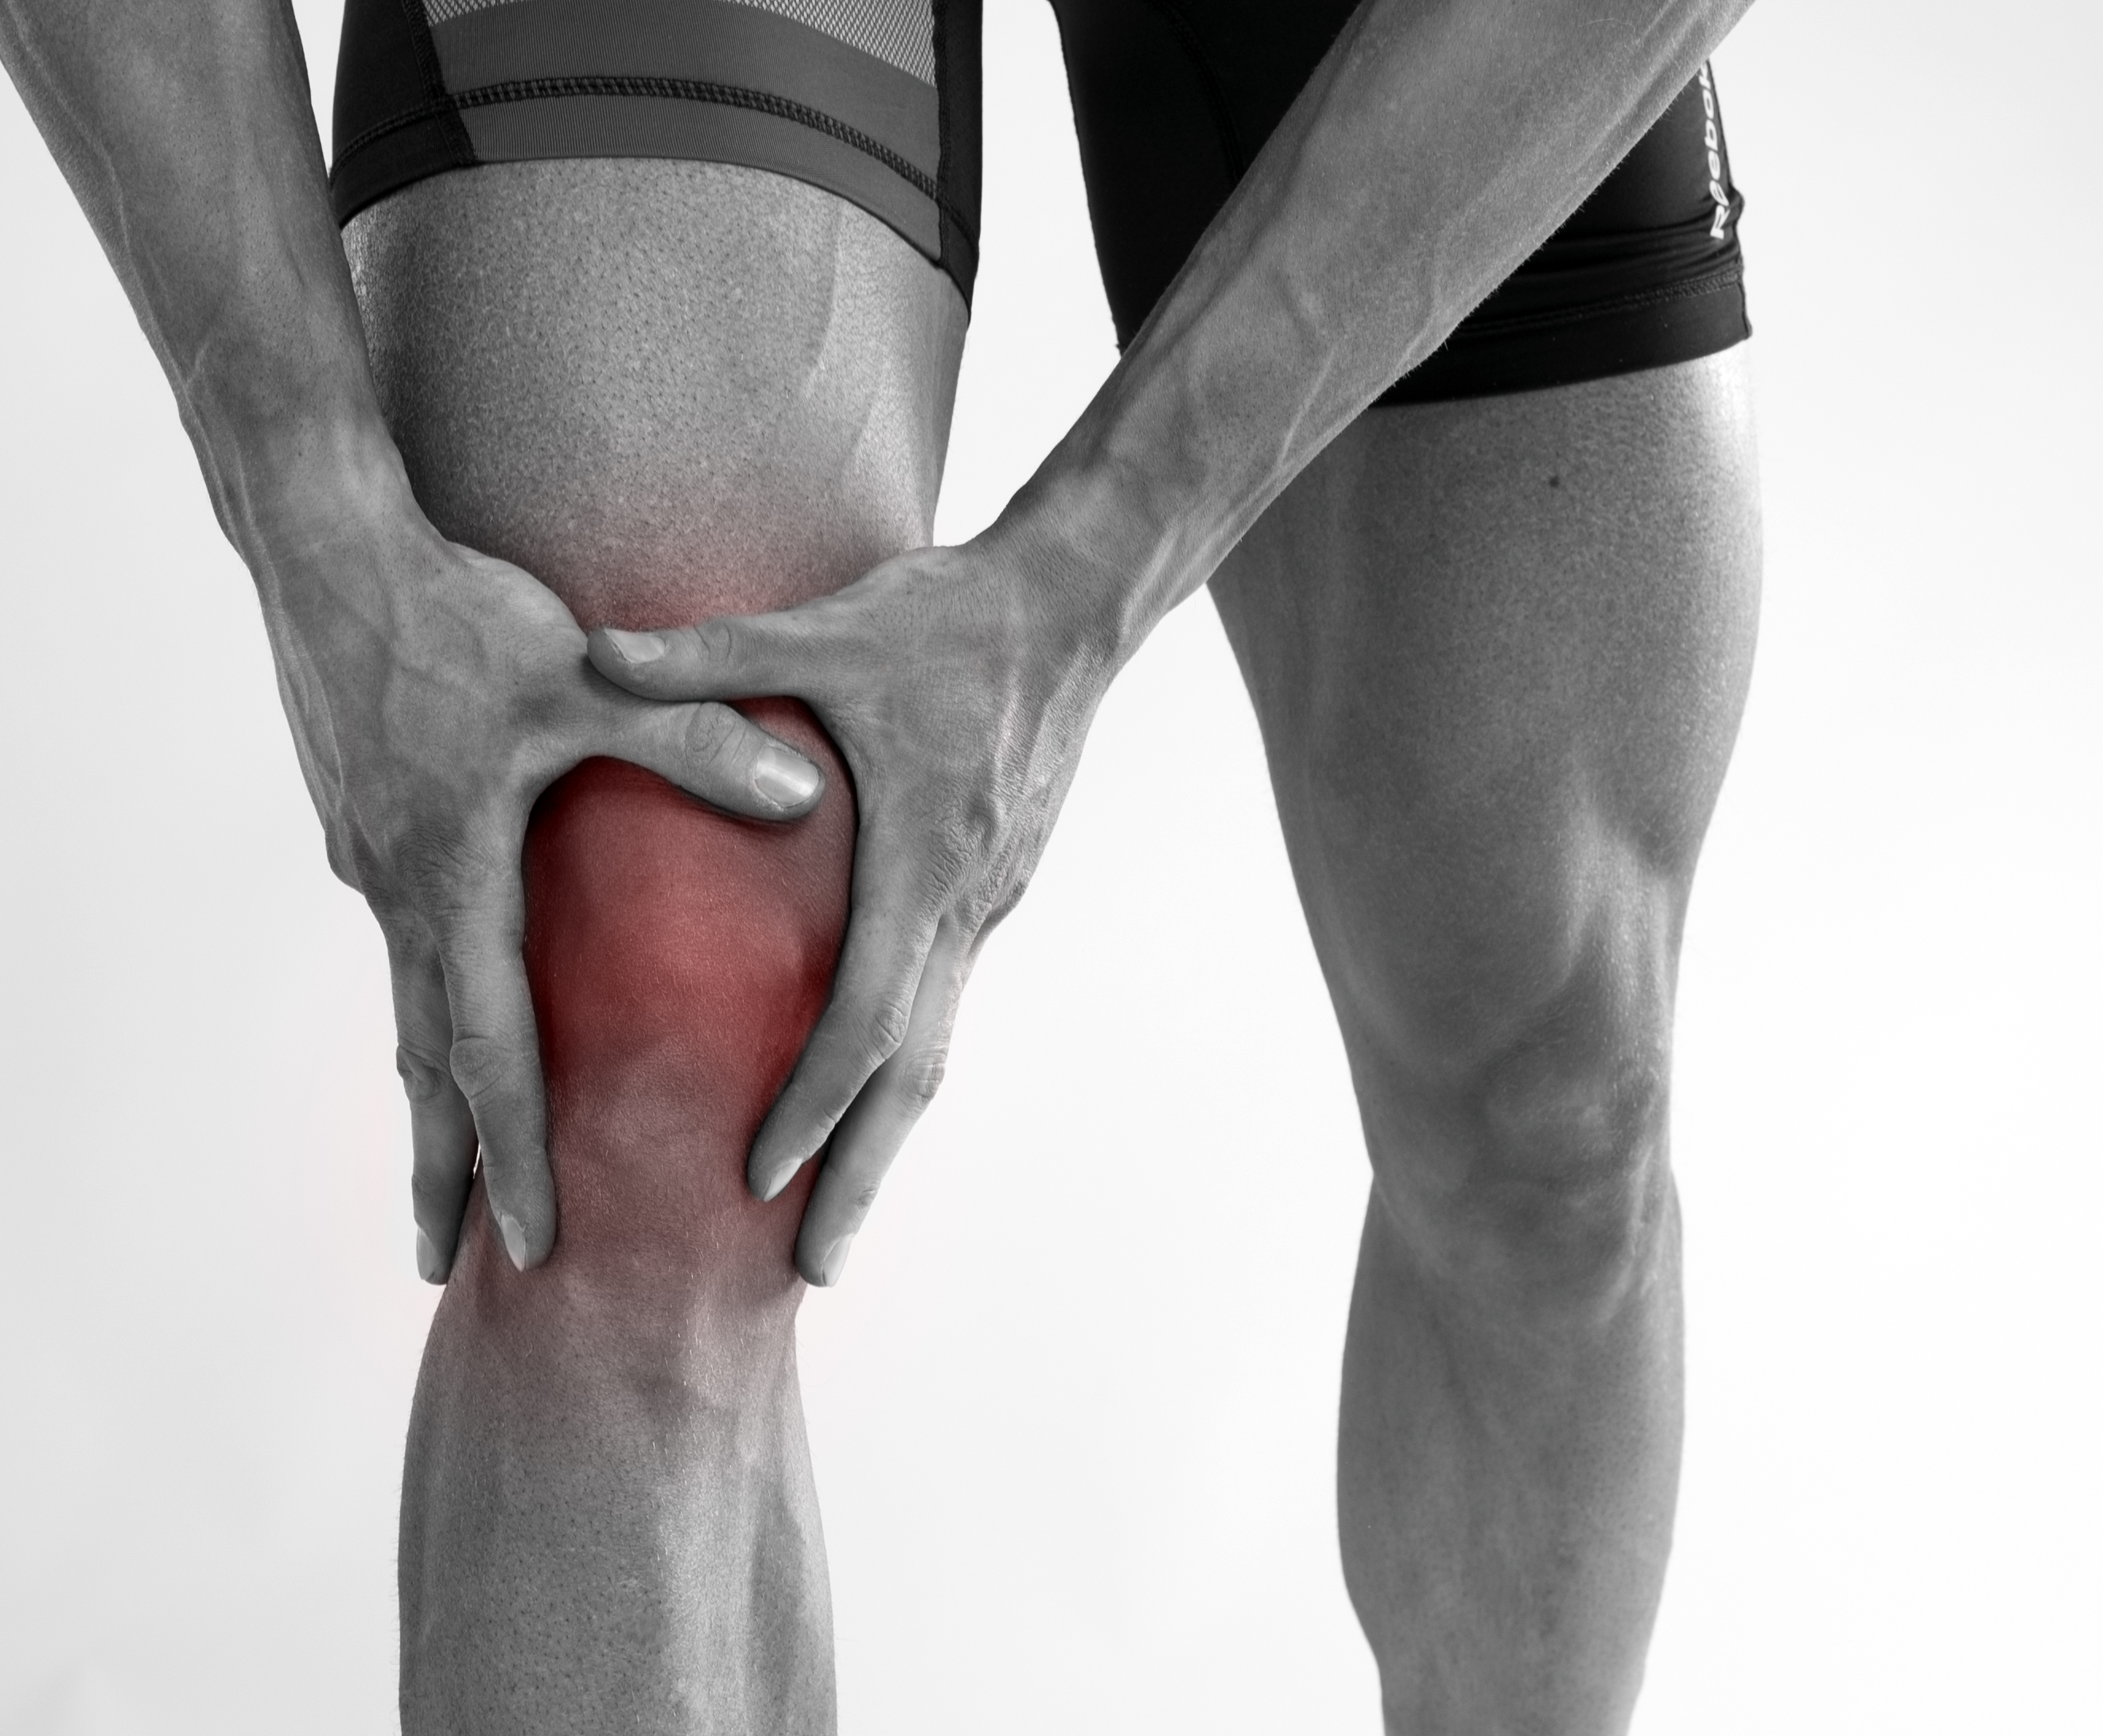 an athlete with chronic pain in his knee